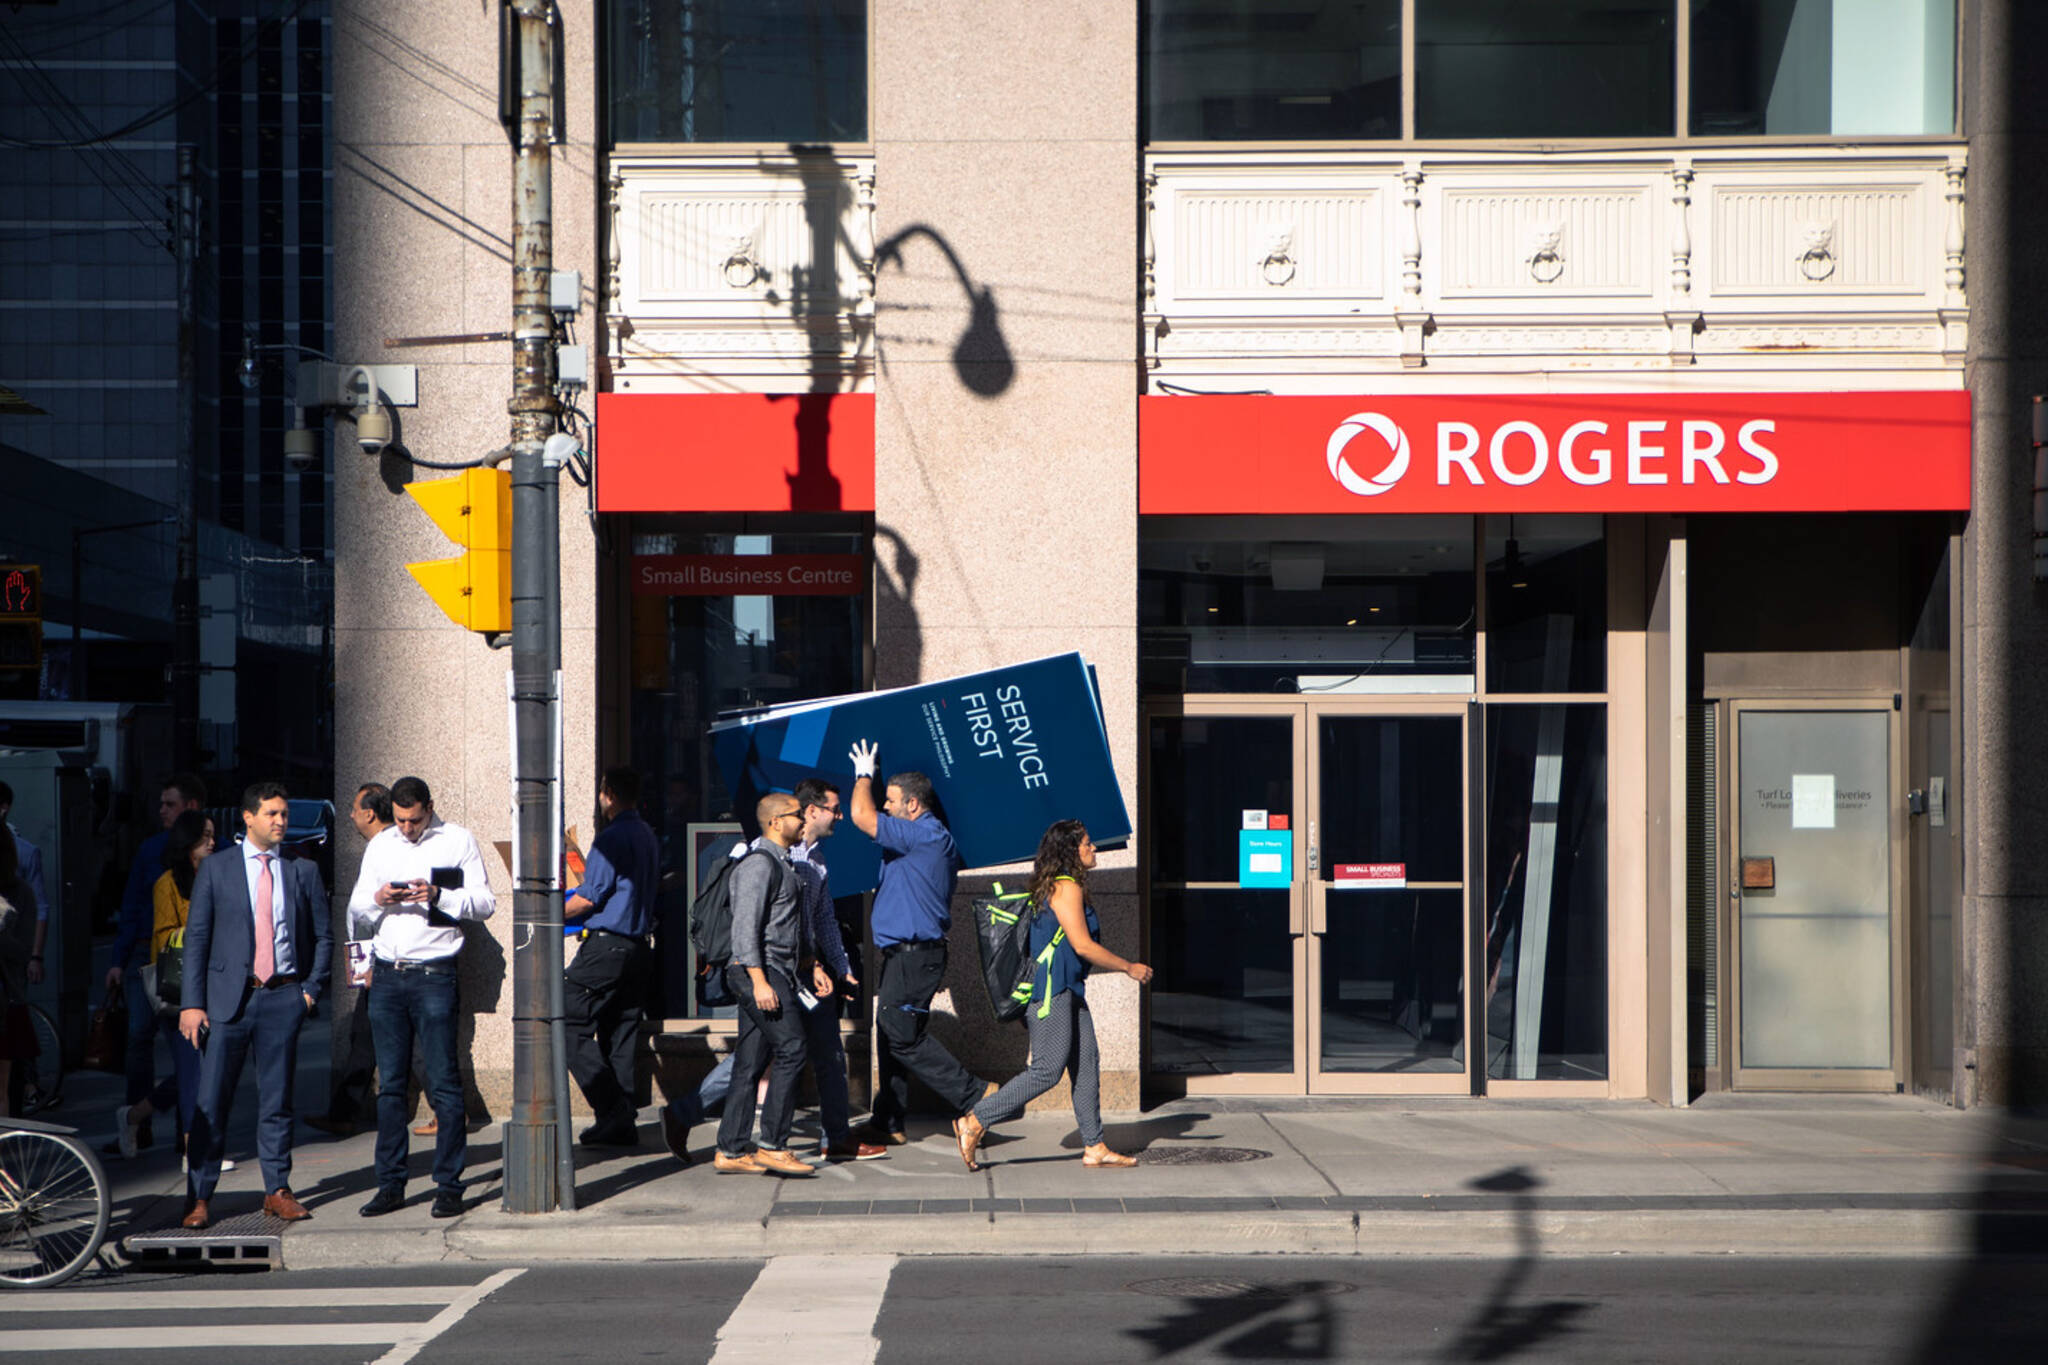 rogers outage